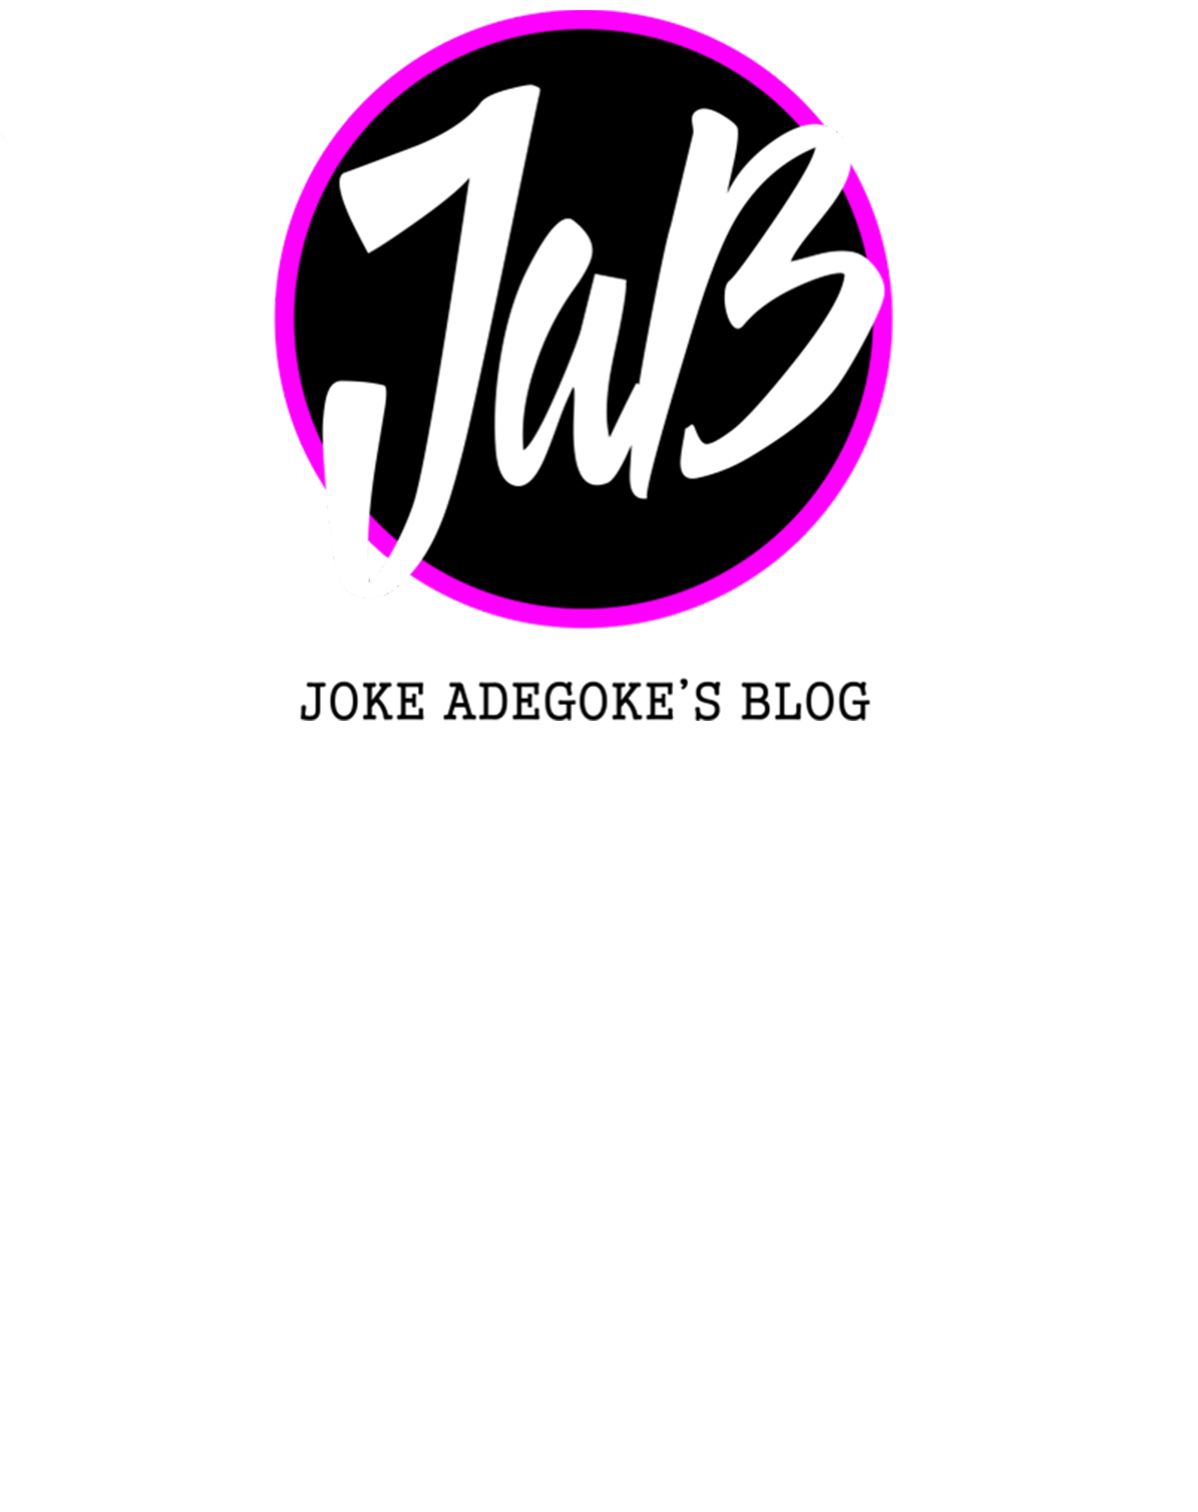 This is Joke Adegoke's Blog